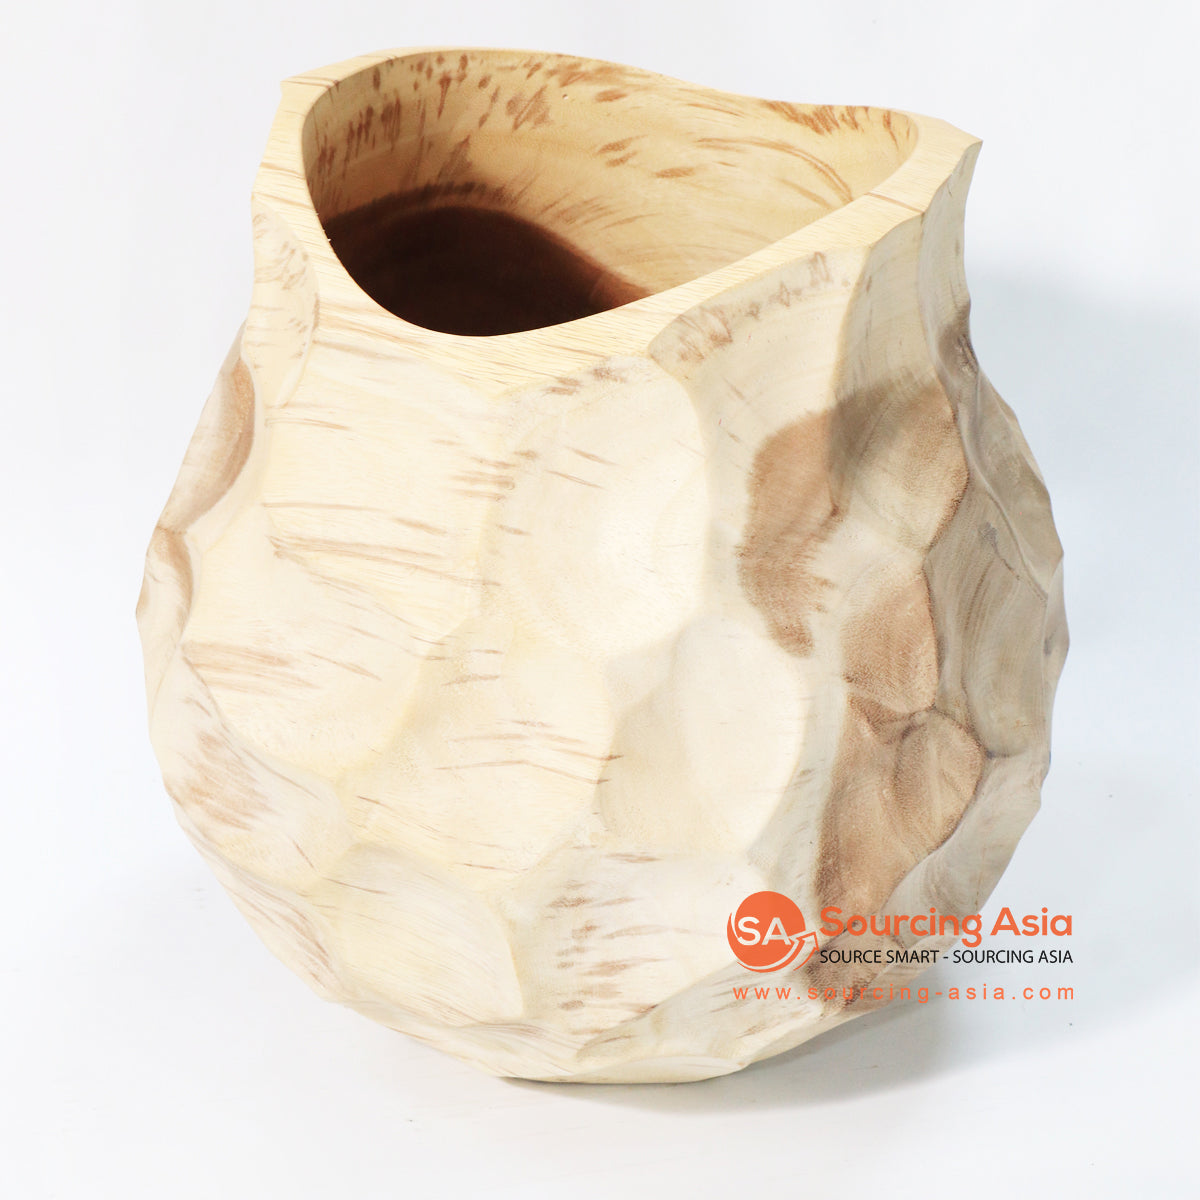 BMWC053 GENDUT SCALLOPED SUAR WOOD VASE